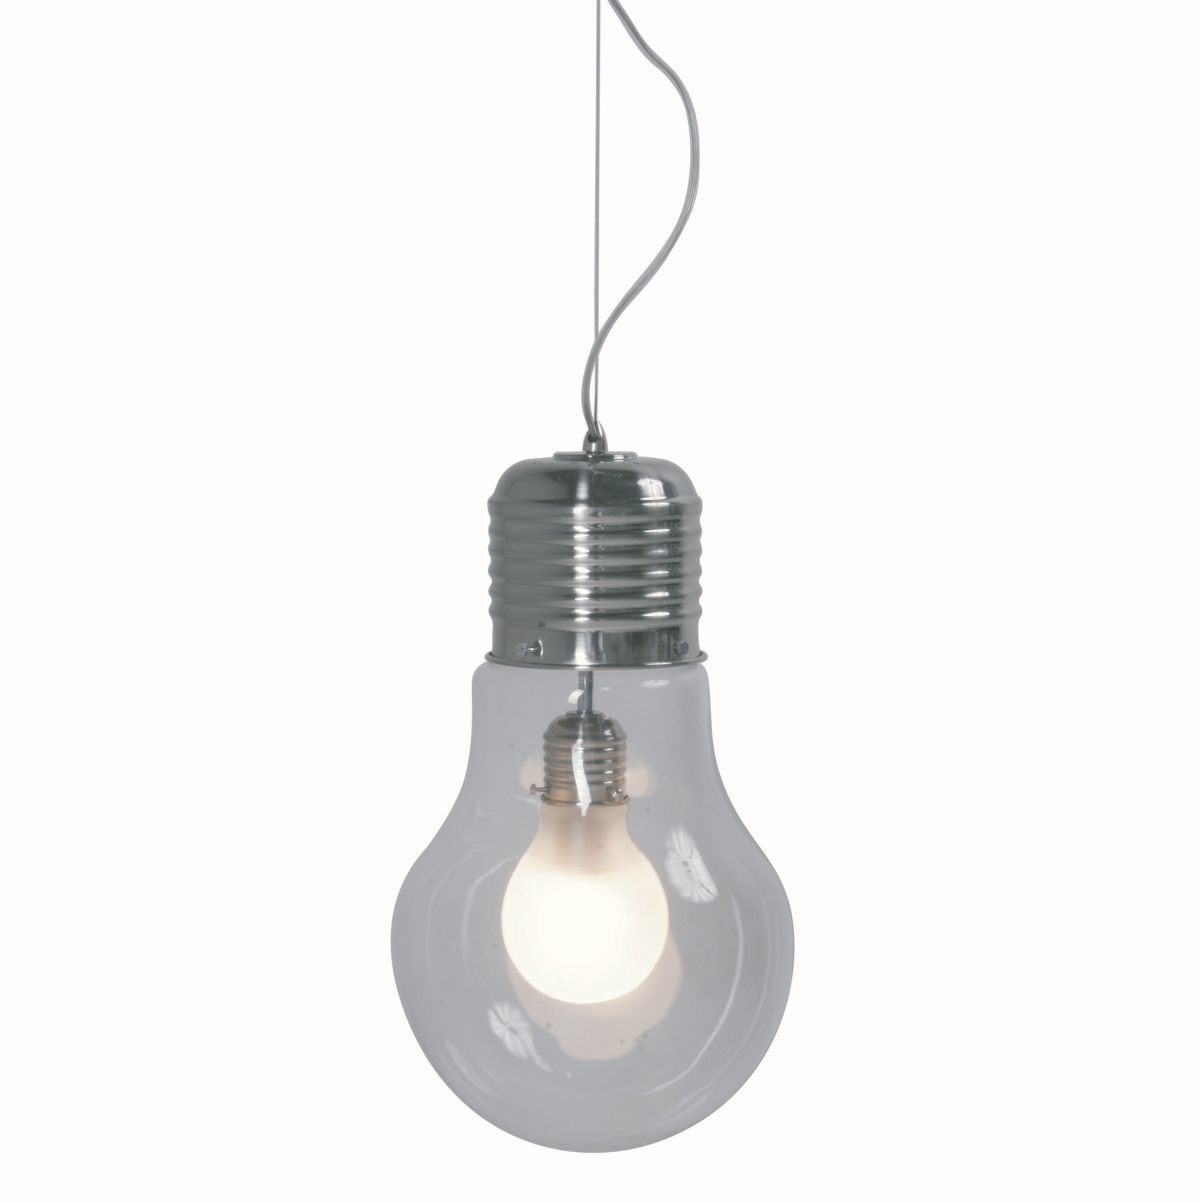 All about light bulb ceiling pendant lighting warisan lighting you can provide food youre lighting needs productively with the utilization of these pendant lighting creative ability is the key there is no requirement aloadofball Gallery